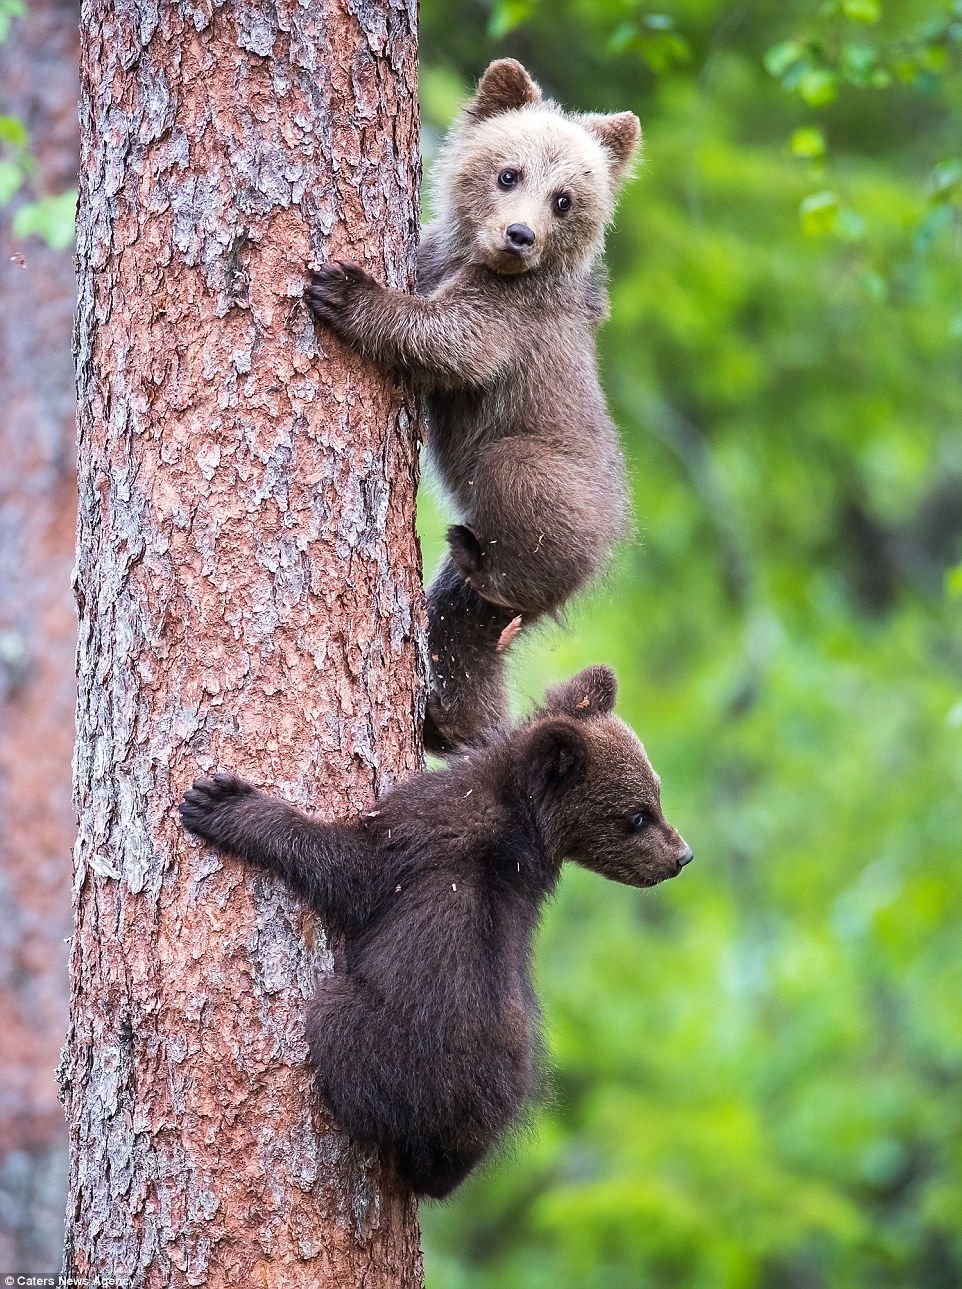 bear wrongs patiently pictures - HD962×1289